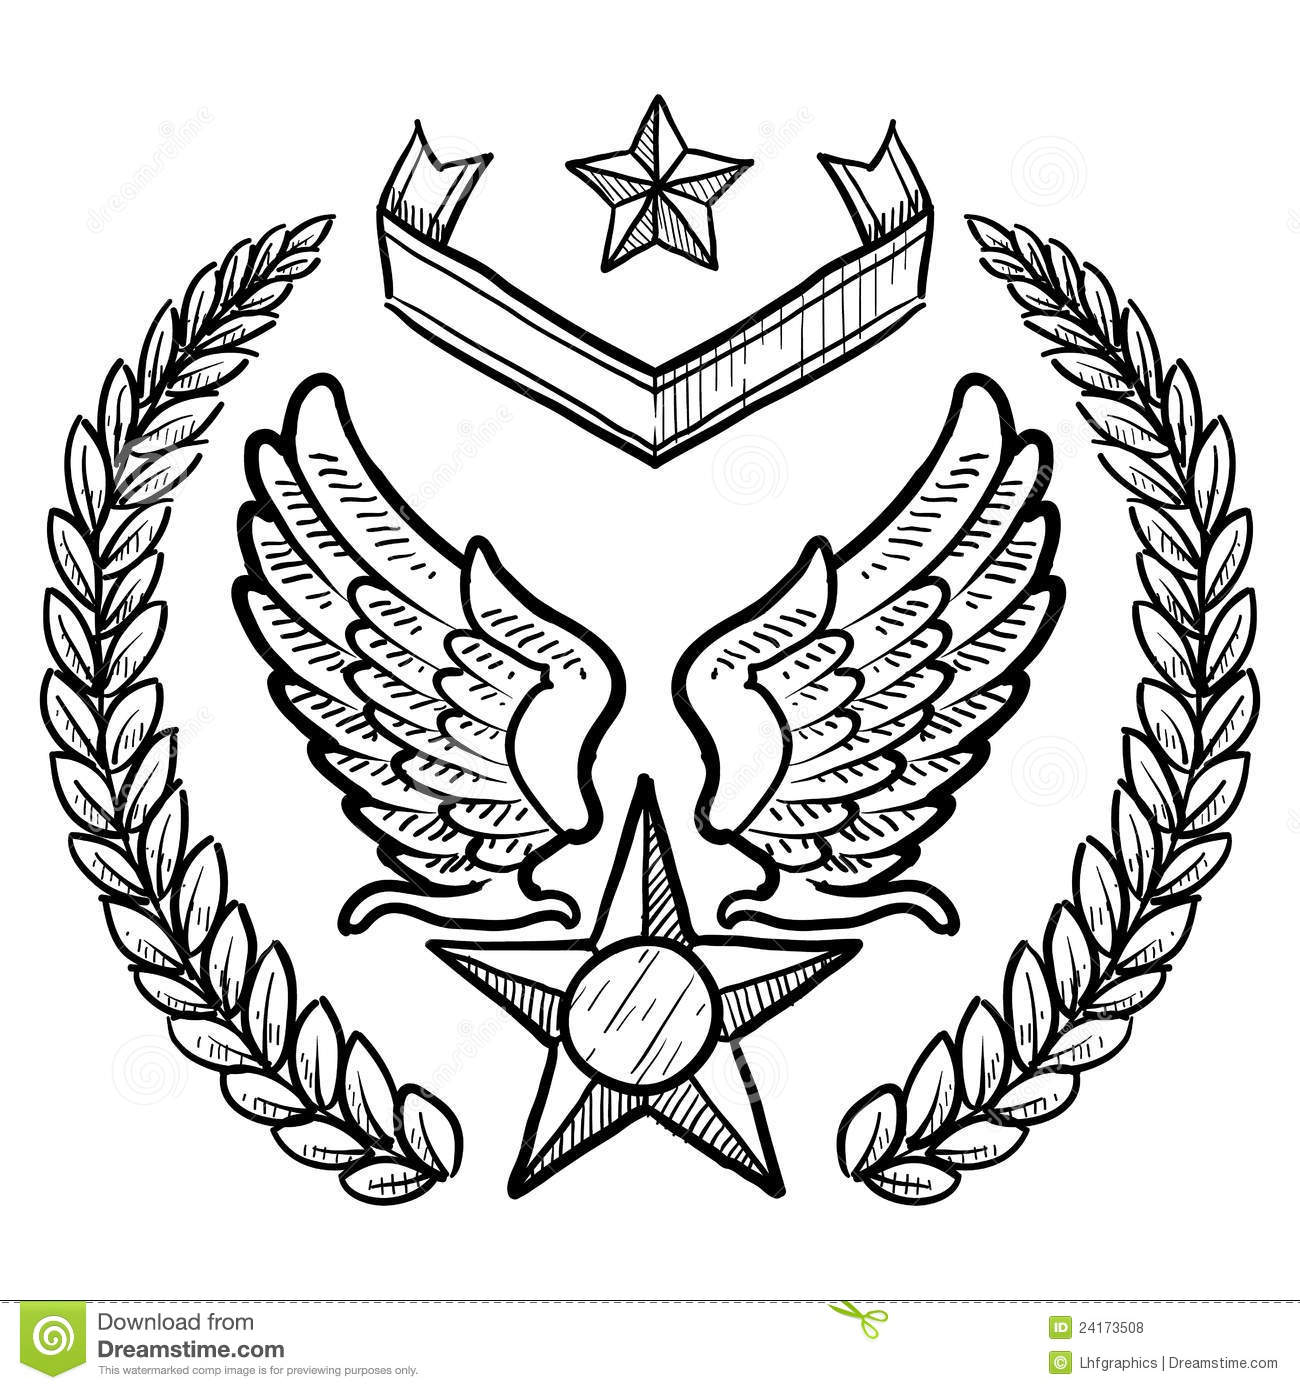 Retro Us Air Force Insignia With Wreath Royalty Free Stock